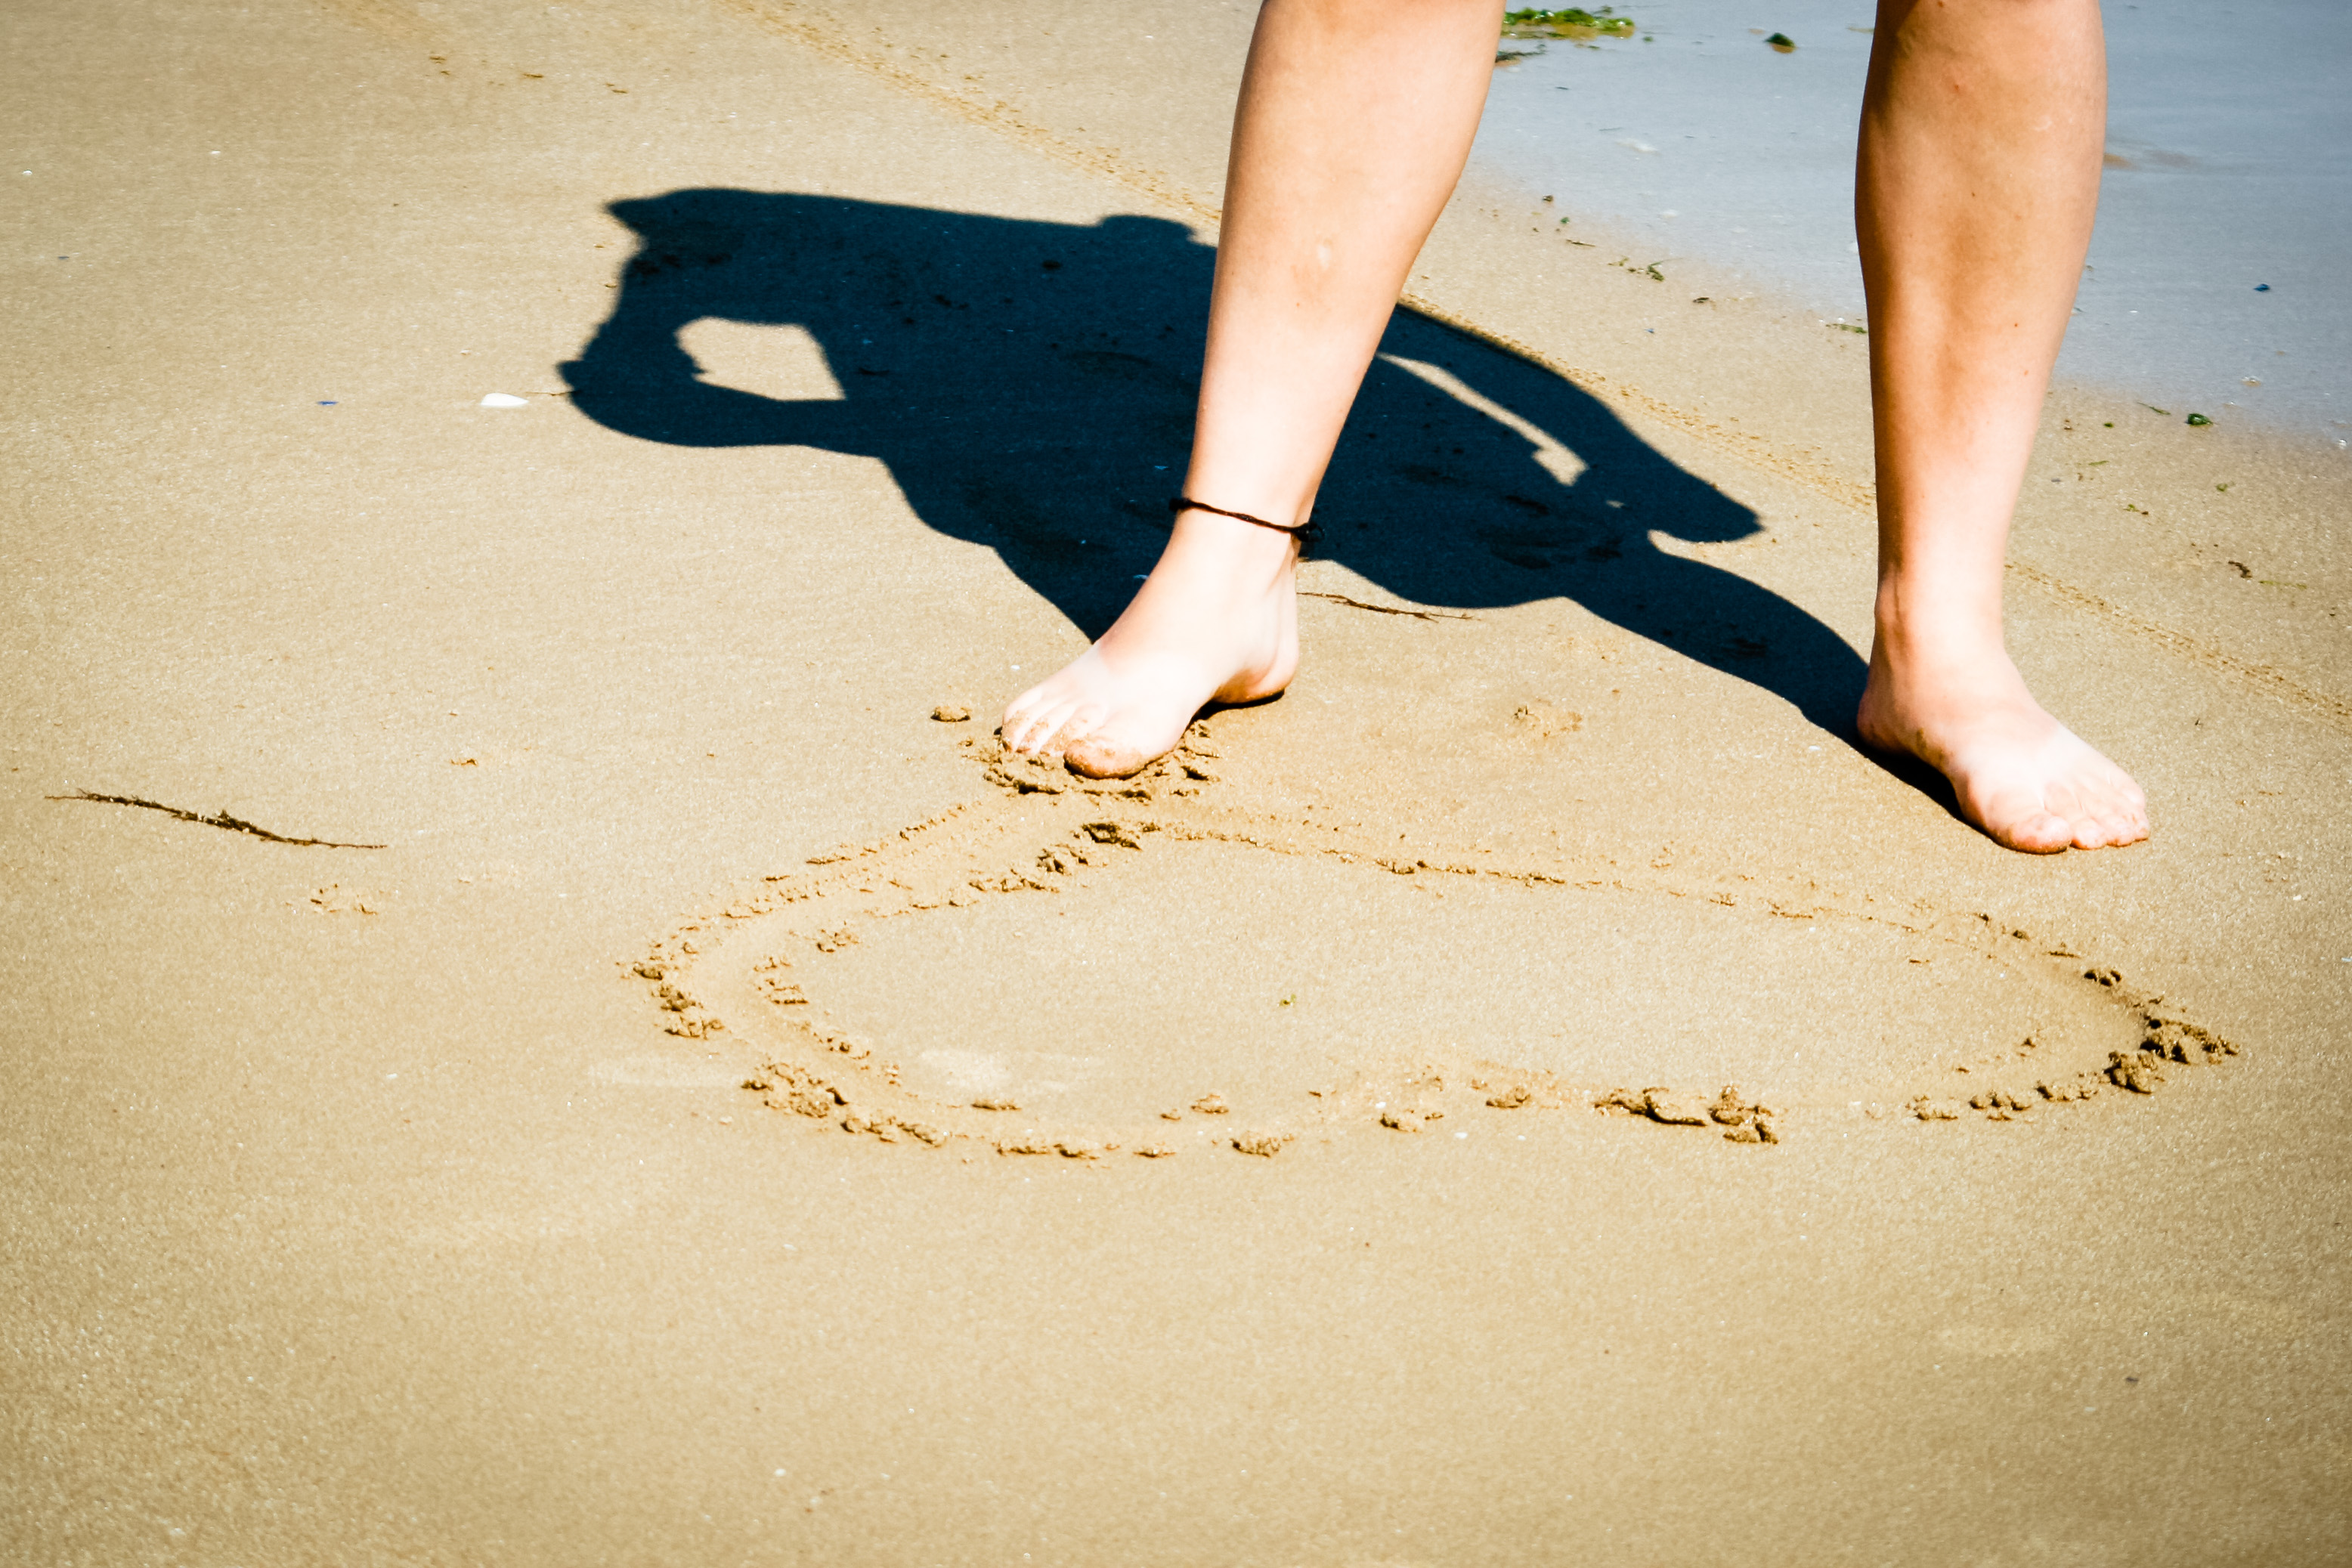 Making a heart in the sand photo